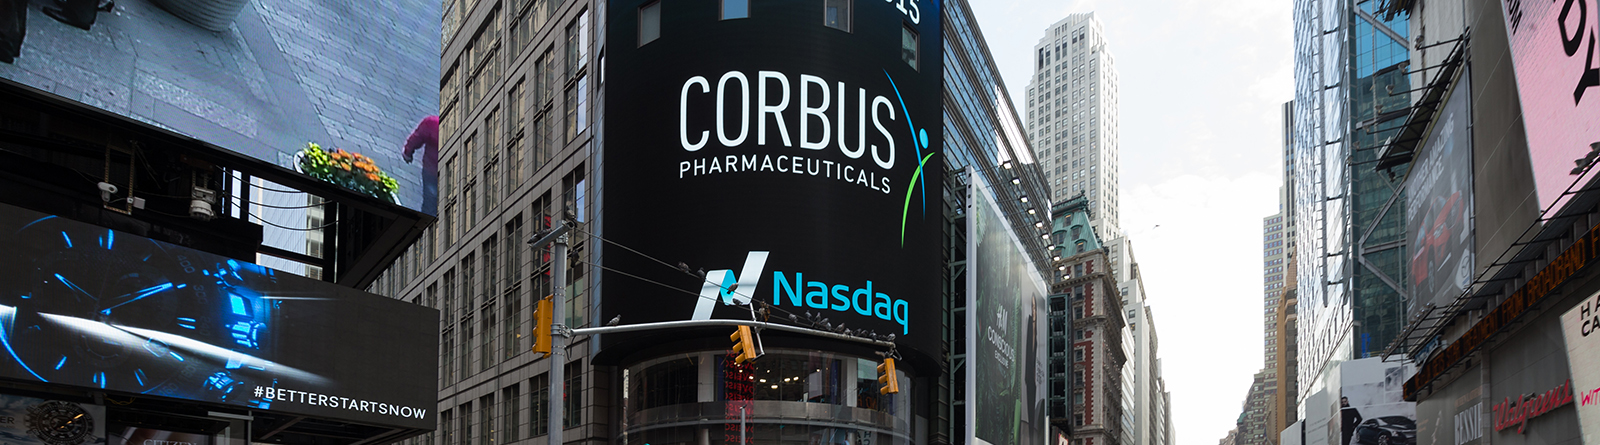 Corbus Pharmaceuticals Announces Issuance of Composition of Matter Patent Related to Lenabasum Banner